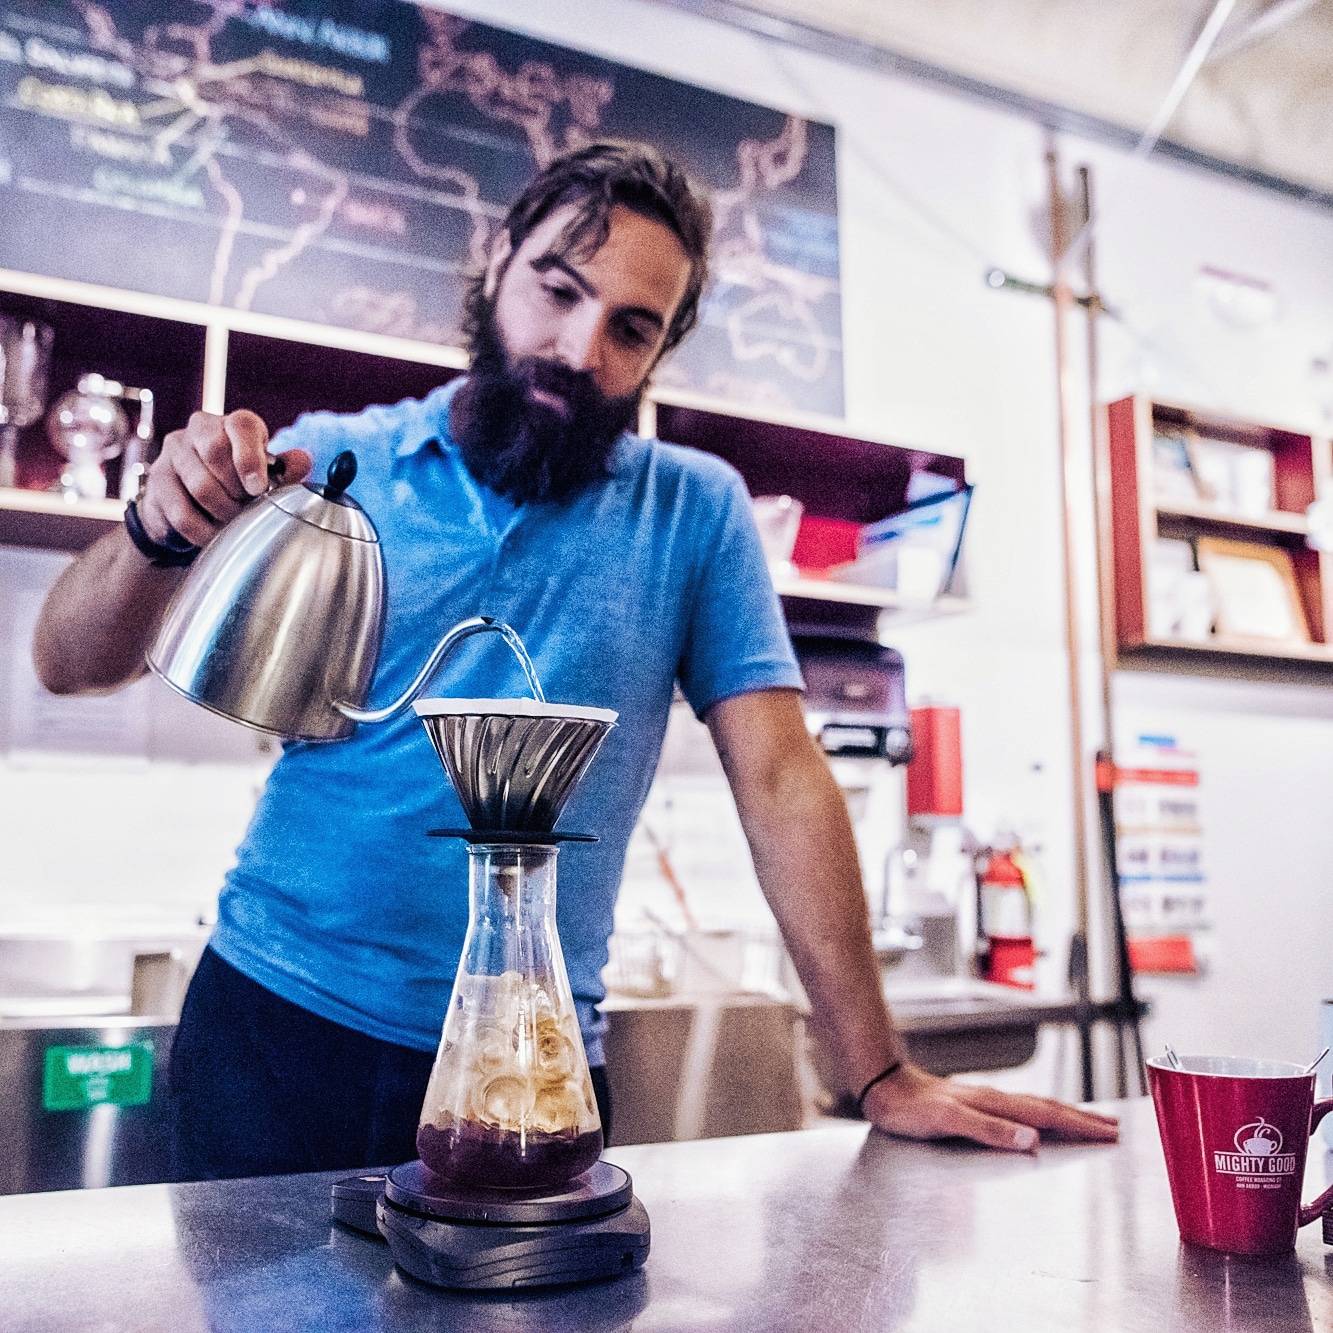 A man makes an iced pourover while leaning on the counter